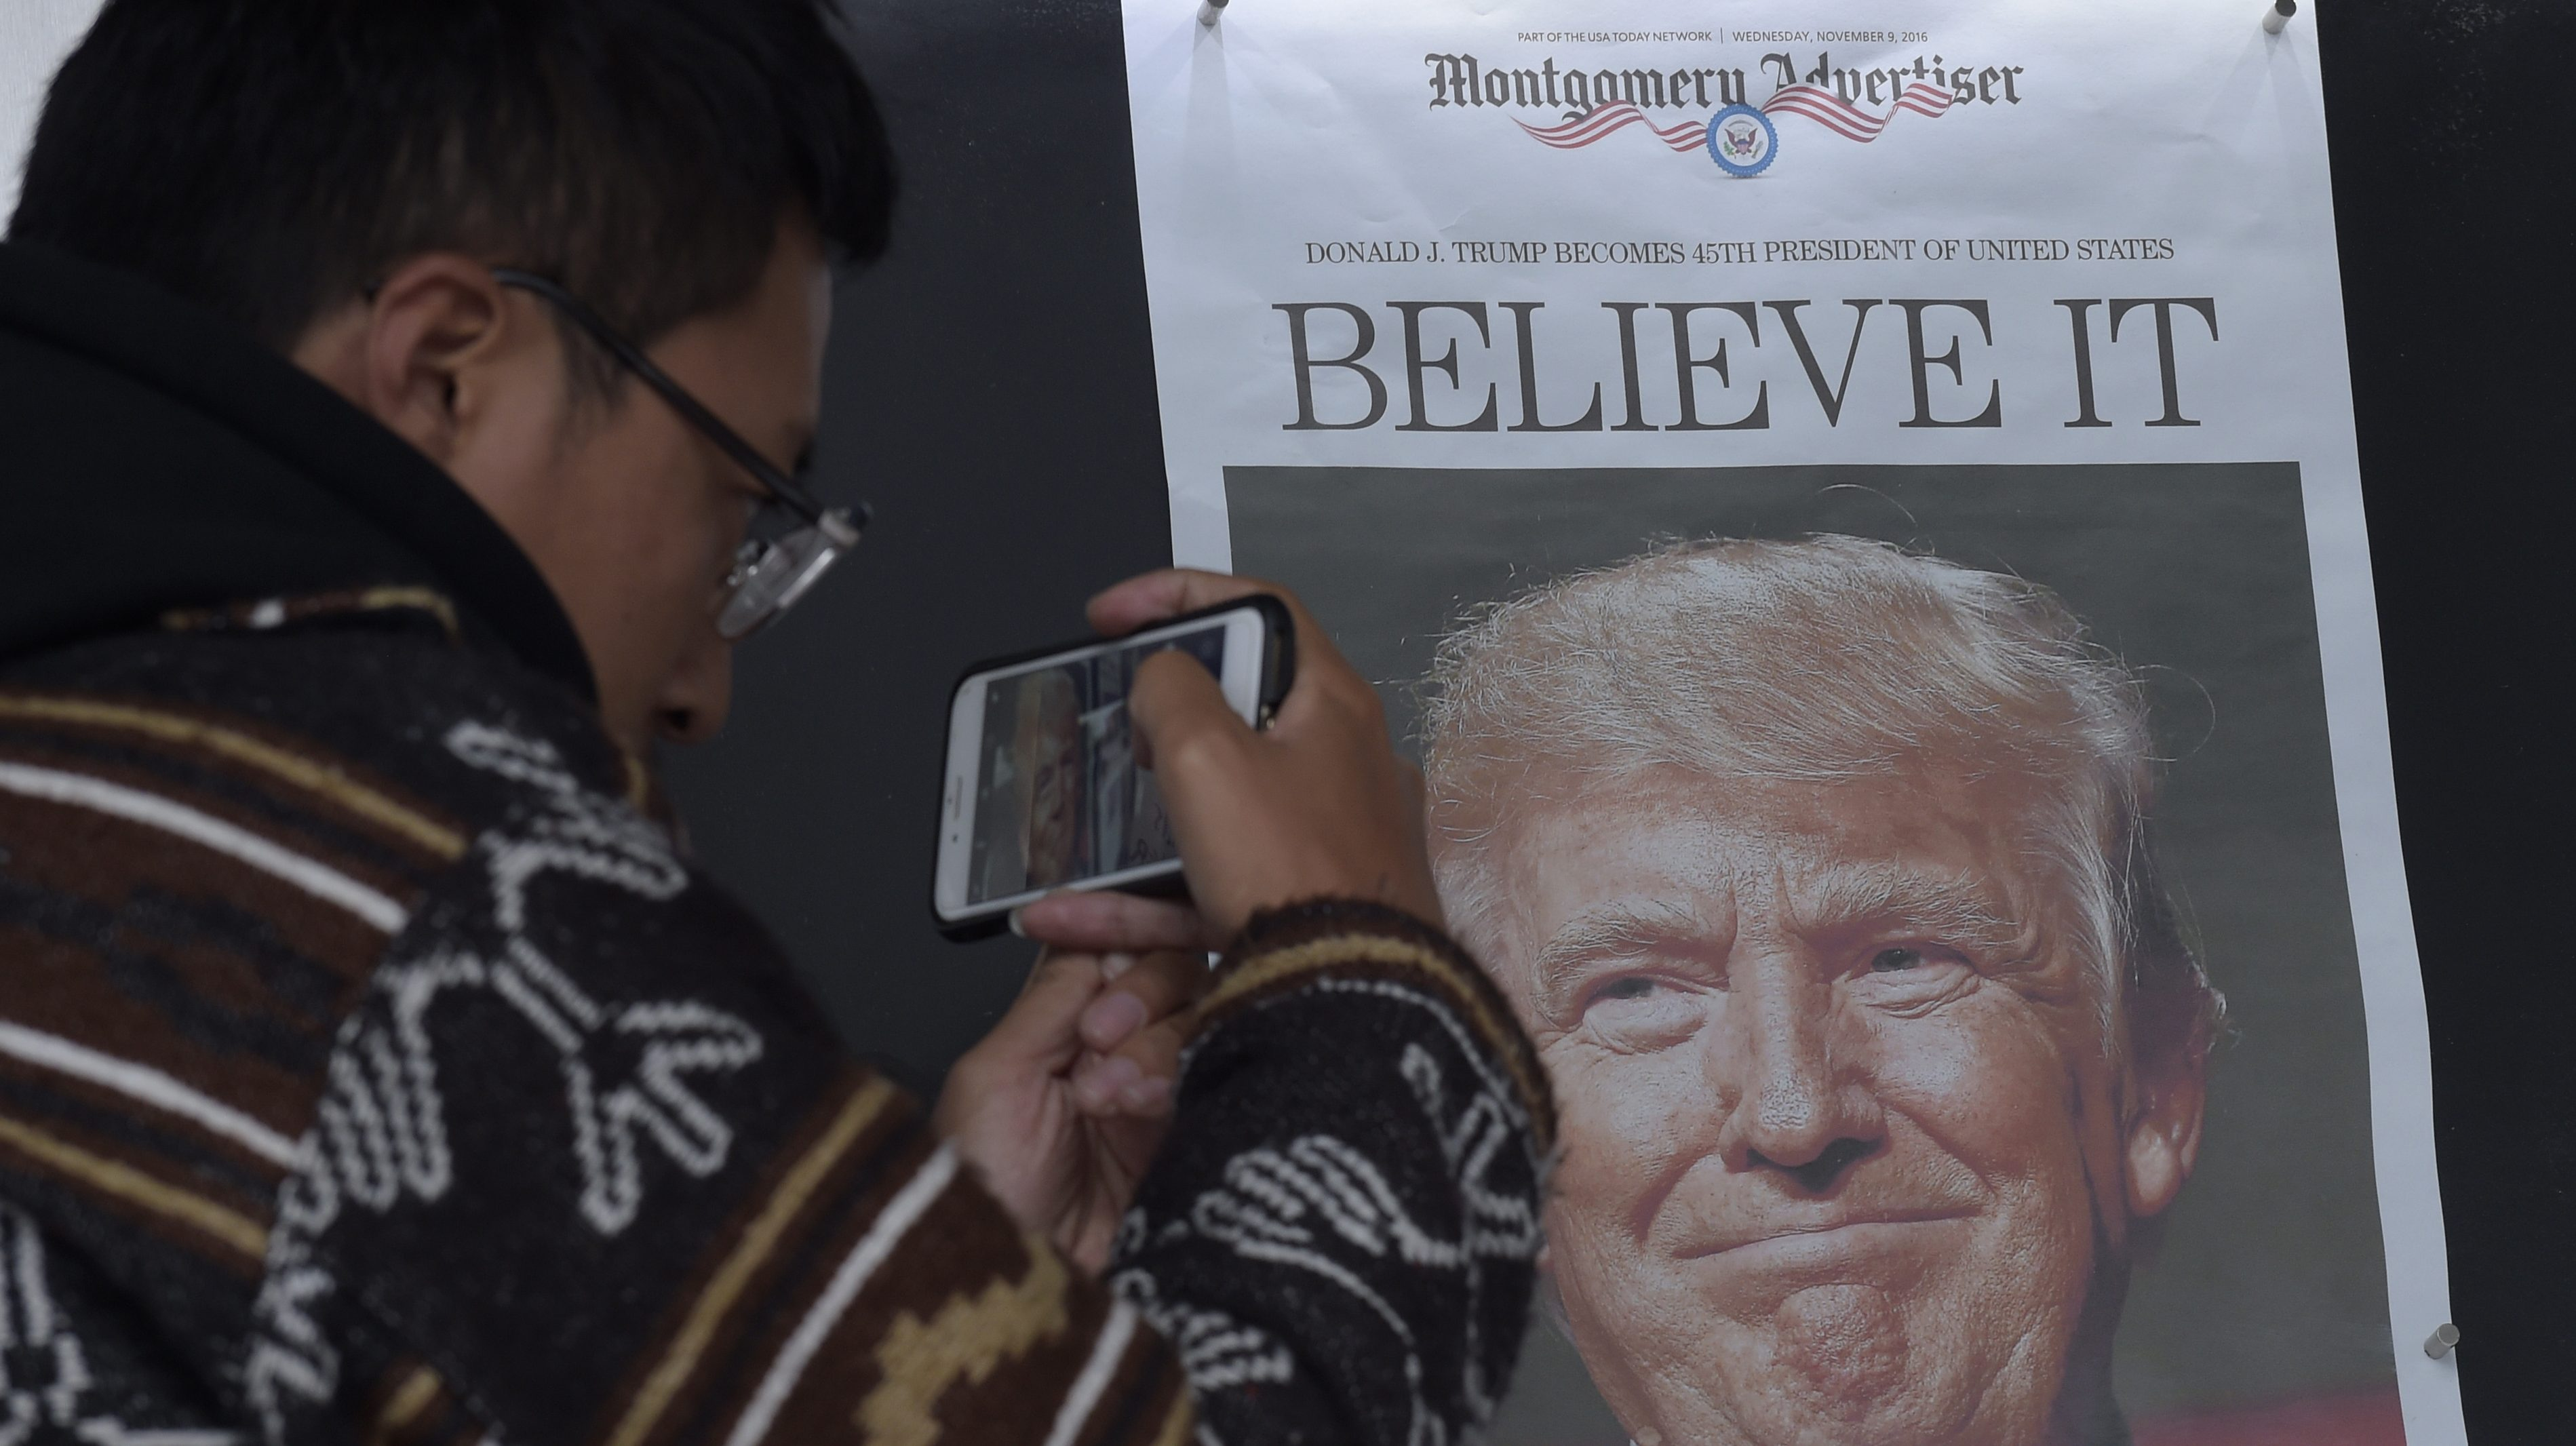 Photo of Donald Trump front page newspaper